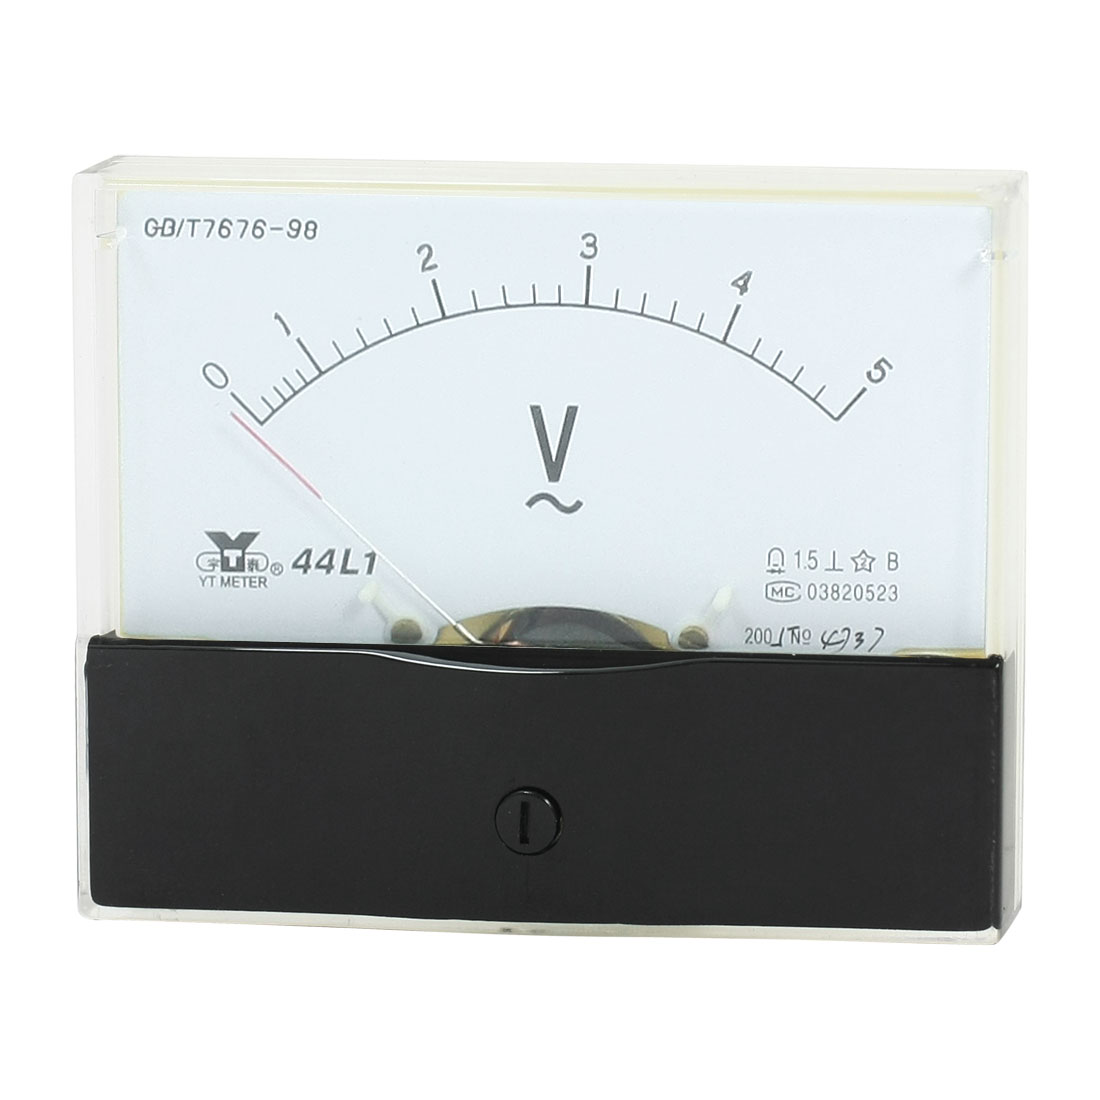 Rectangle Measurement Tool Analog Panel Voltmeter Volt Meter AC 0 - 5V Measuring Range 44L1